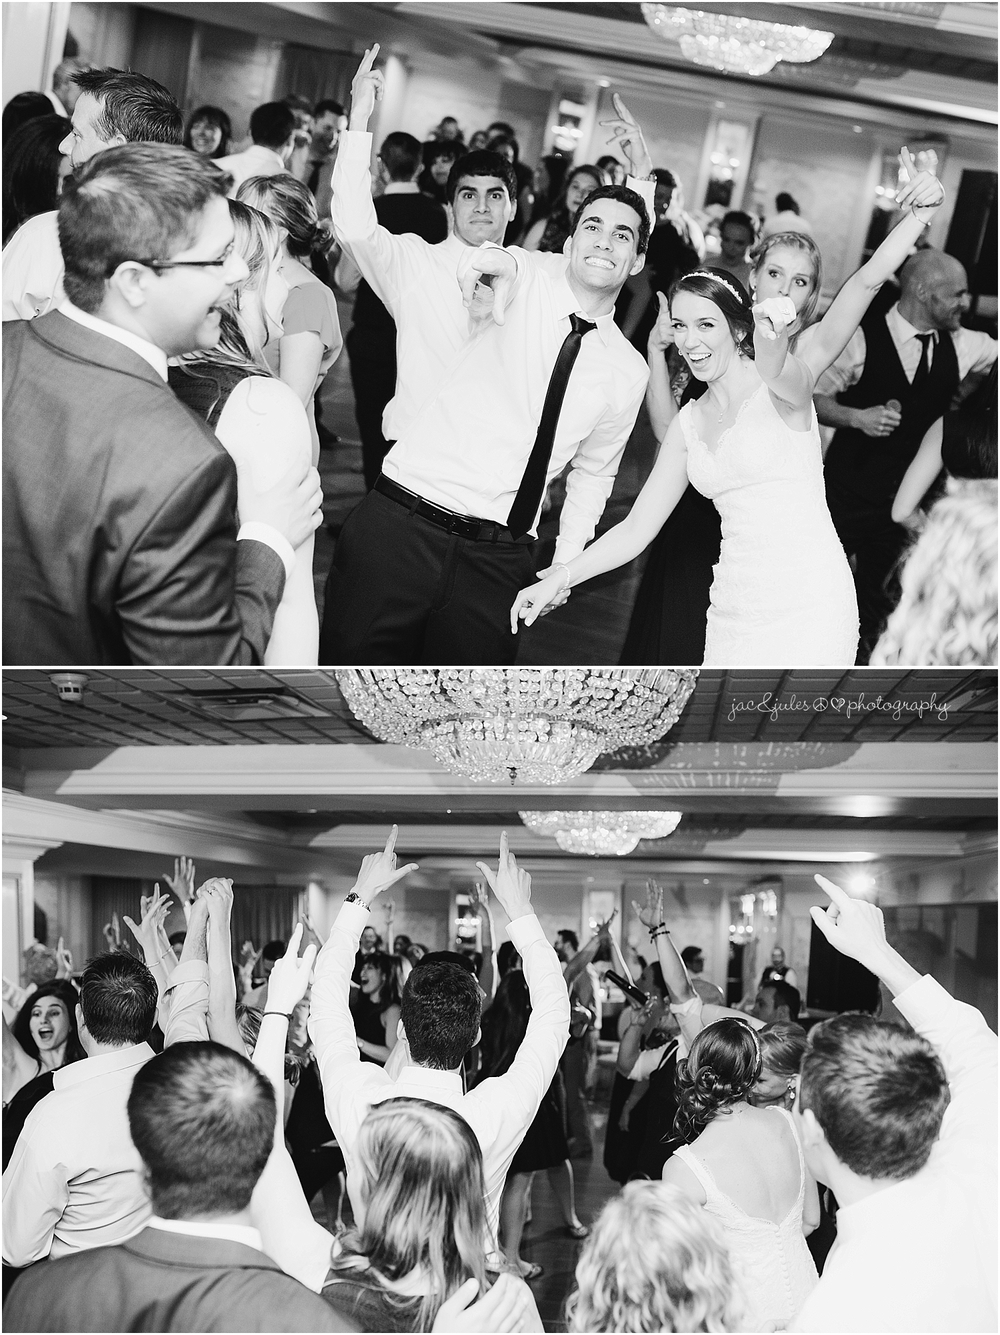 jacnjules photograph fun, wild wedding reception at the olde mill inn in basking ridge nj